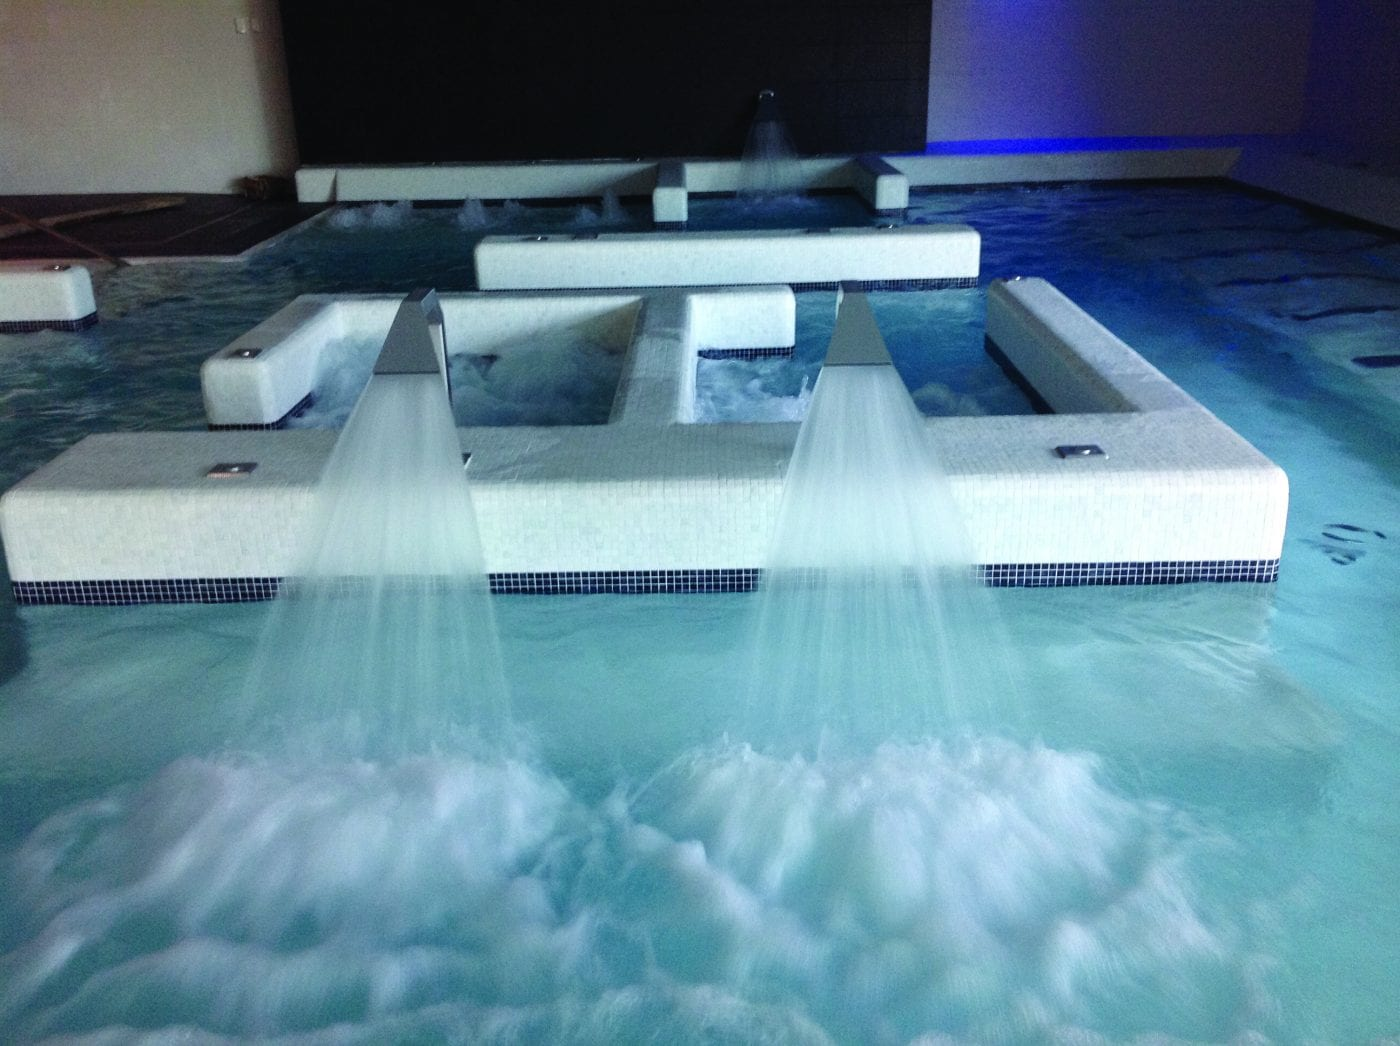 Stainless steel nozzle fountains flowing into indoor pool